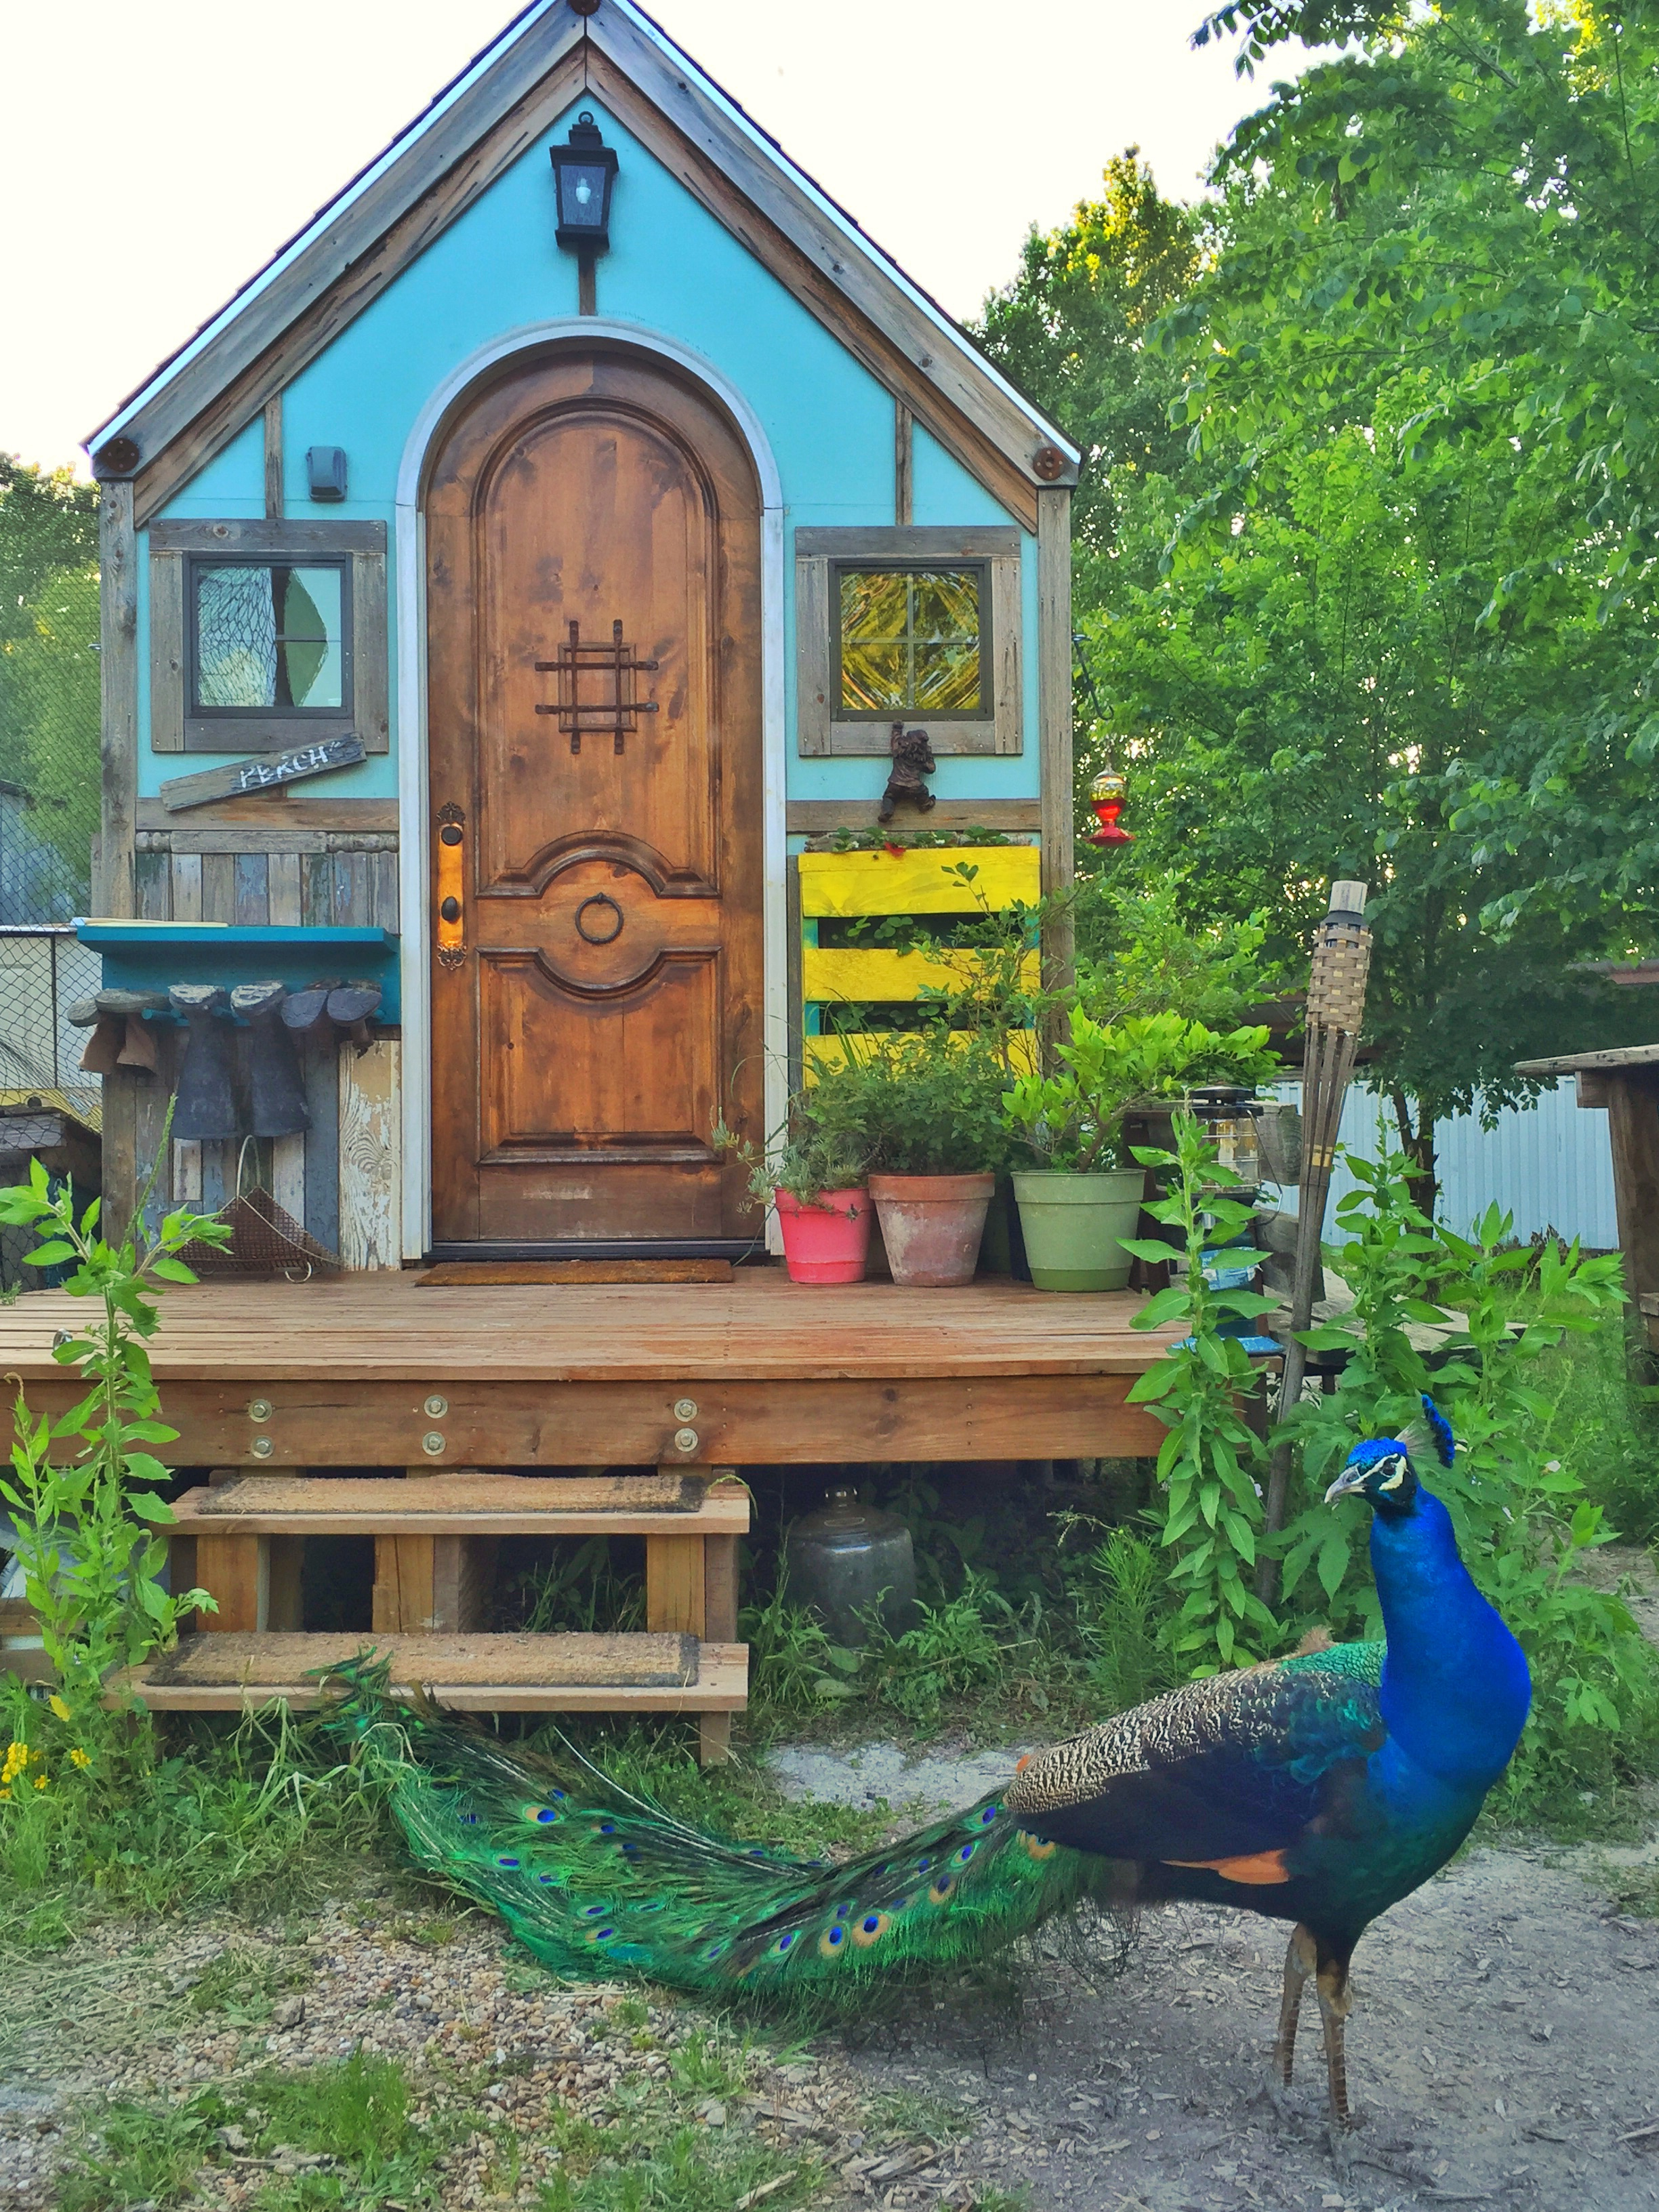 Some of Zack's handy work,As Featured on Tiny House Nation. 192 Sq. FT. Bird House, S2 E 6 , also known as The Window to the Wild tiny house